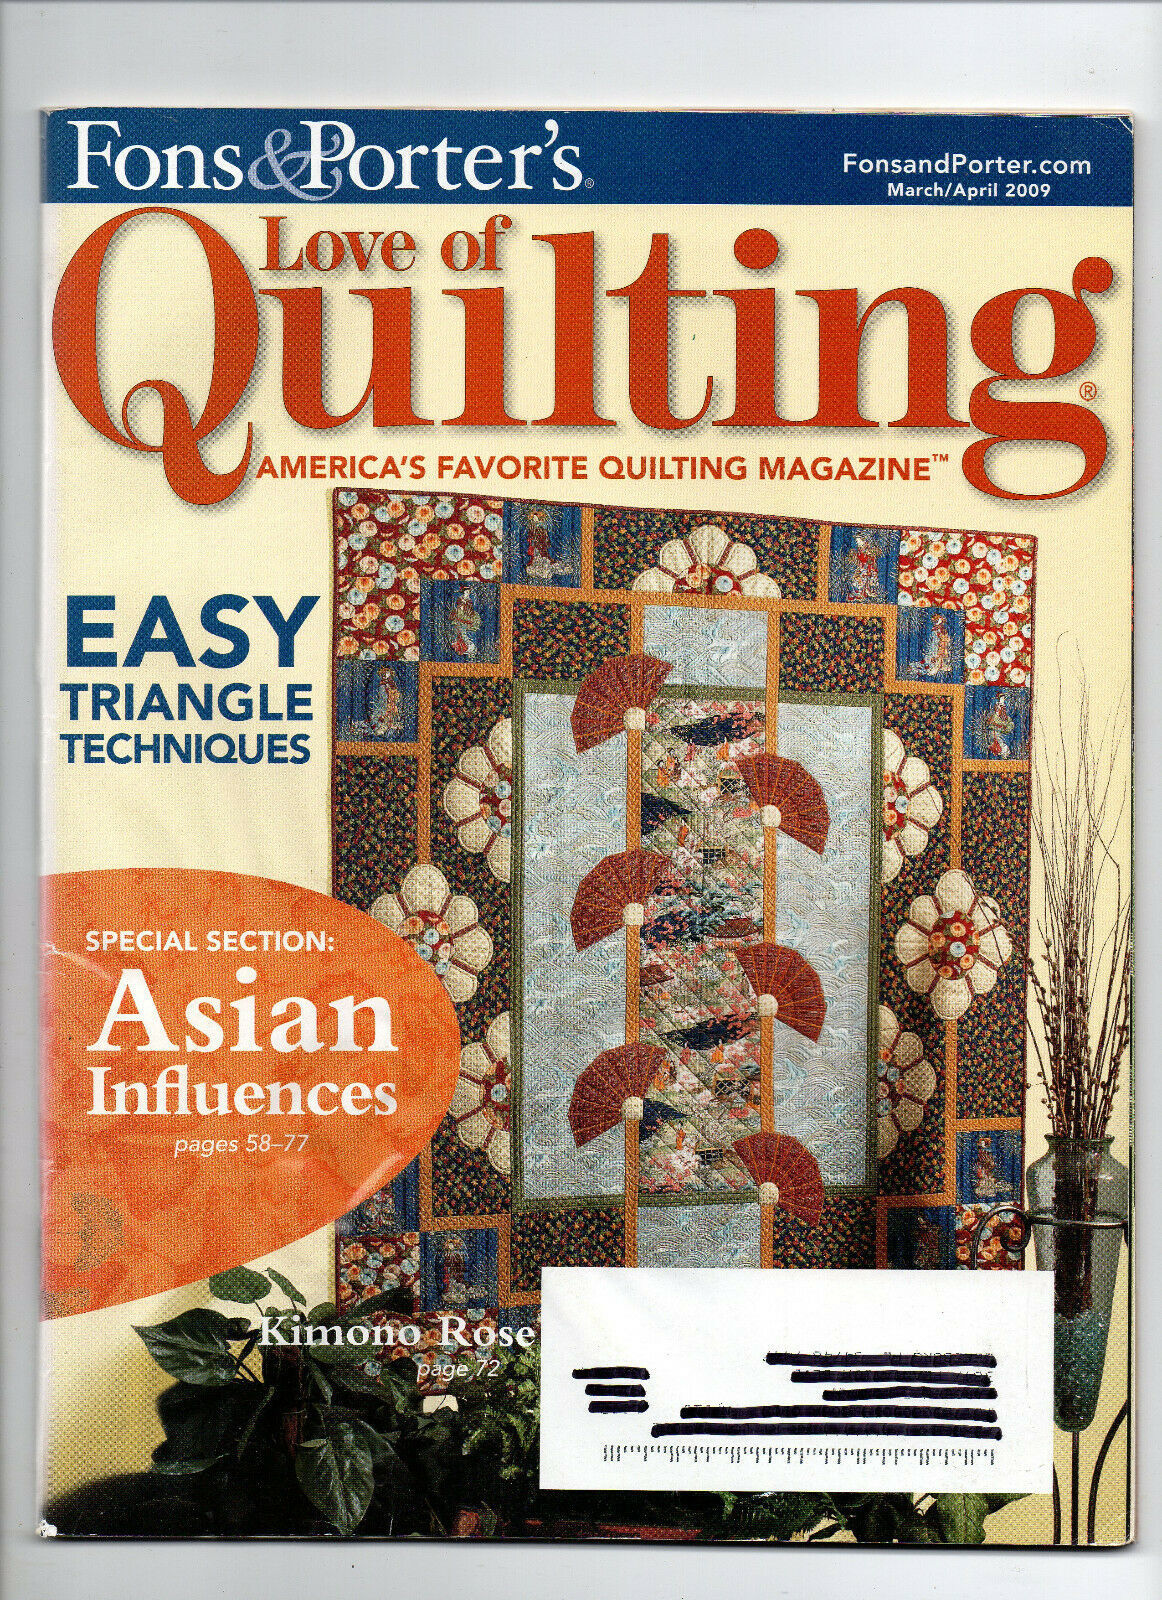 Primary image for 2009 March-April/Fon's & Porter's Love of Quilting/Preowned Magazine